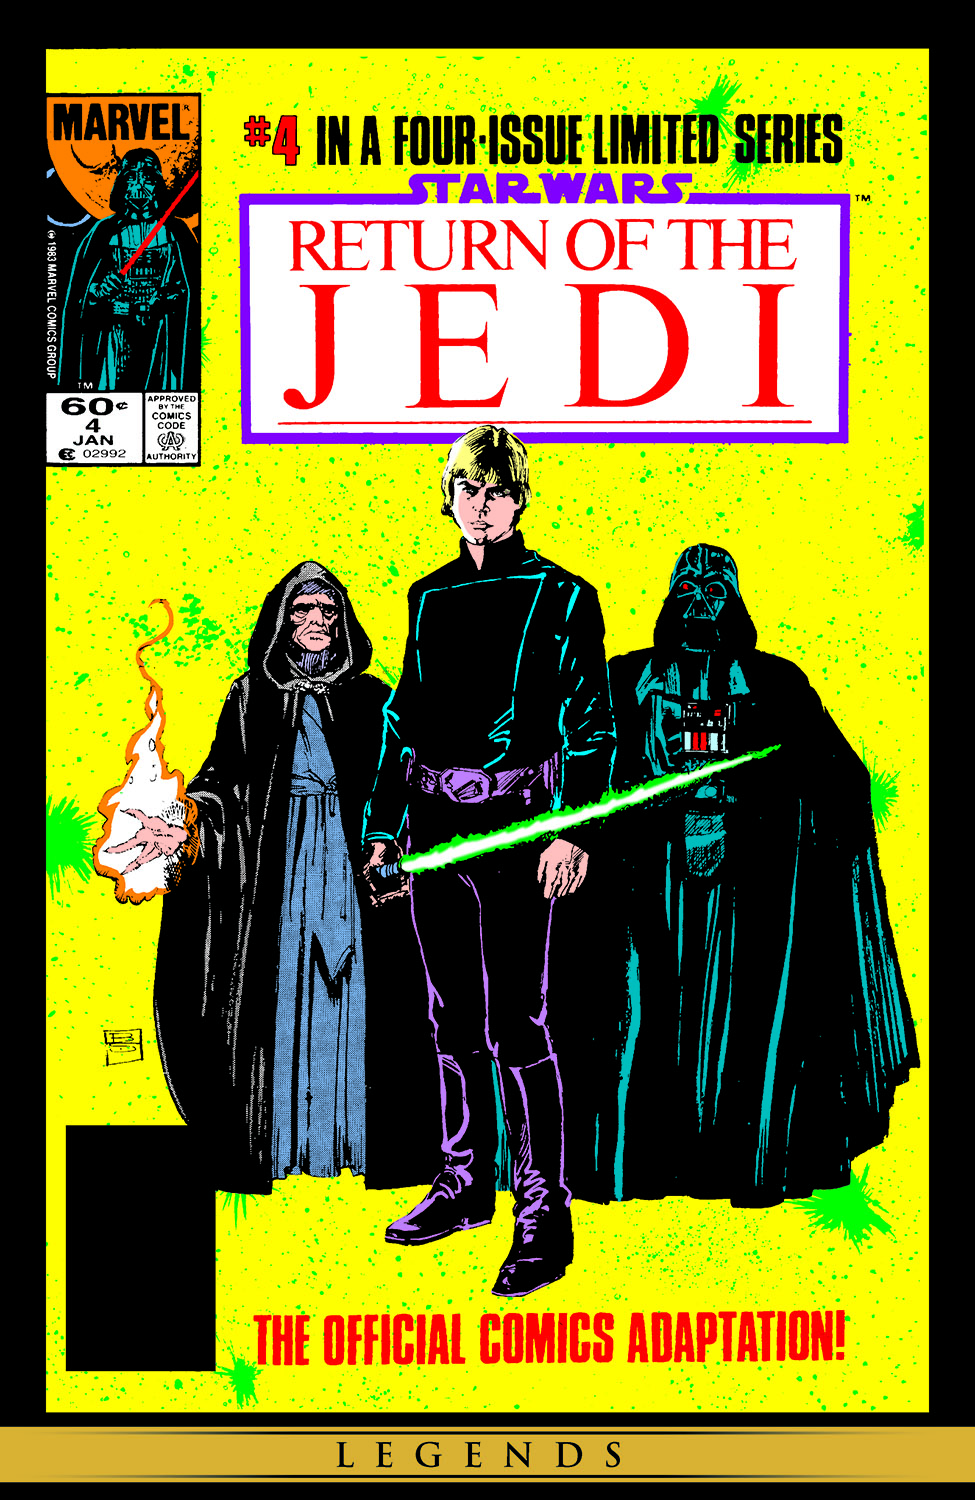 Star Wars: Return of the Jedi (1983) #4